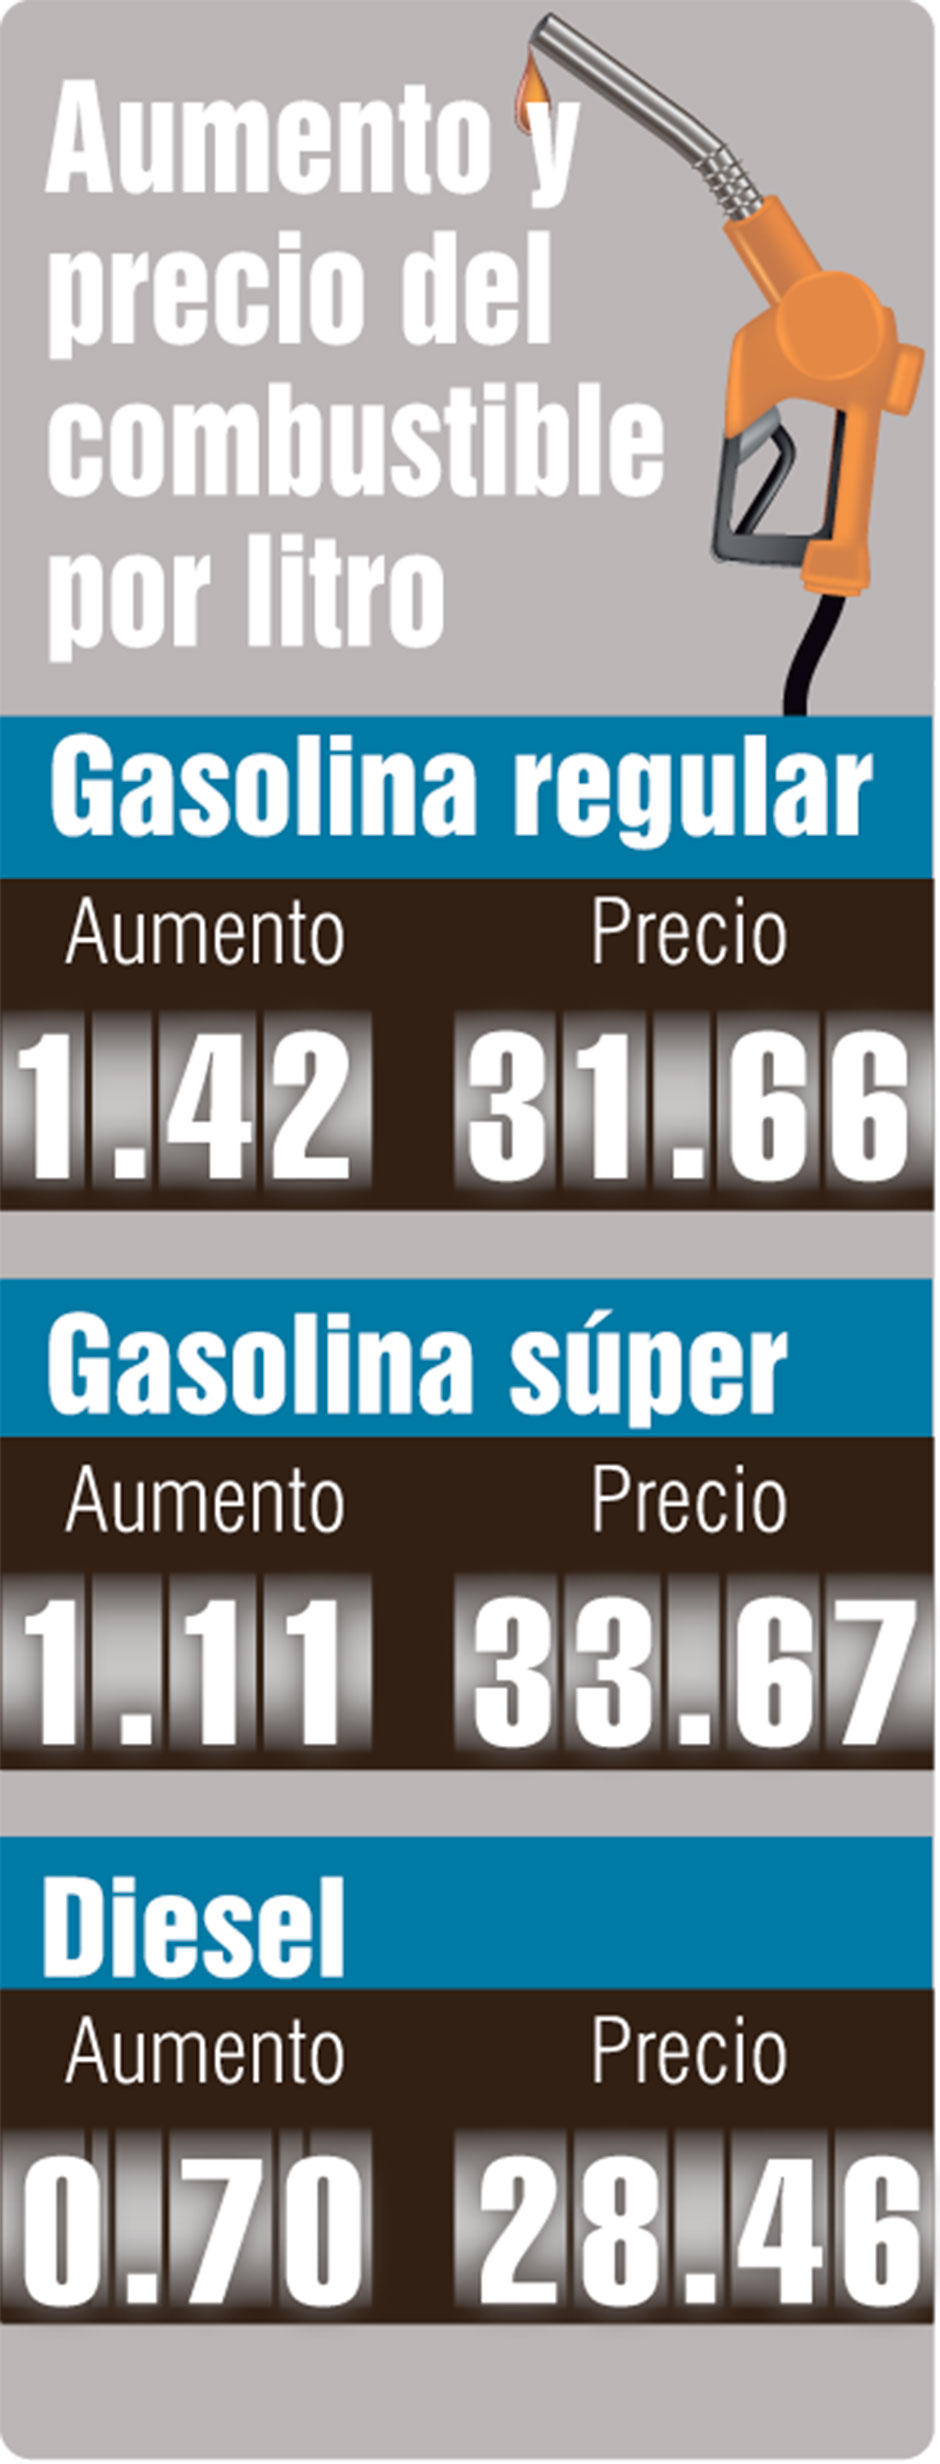 combustible alza